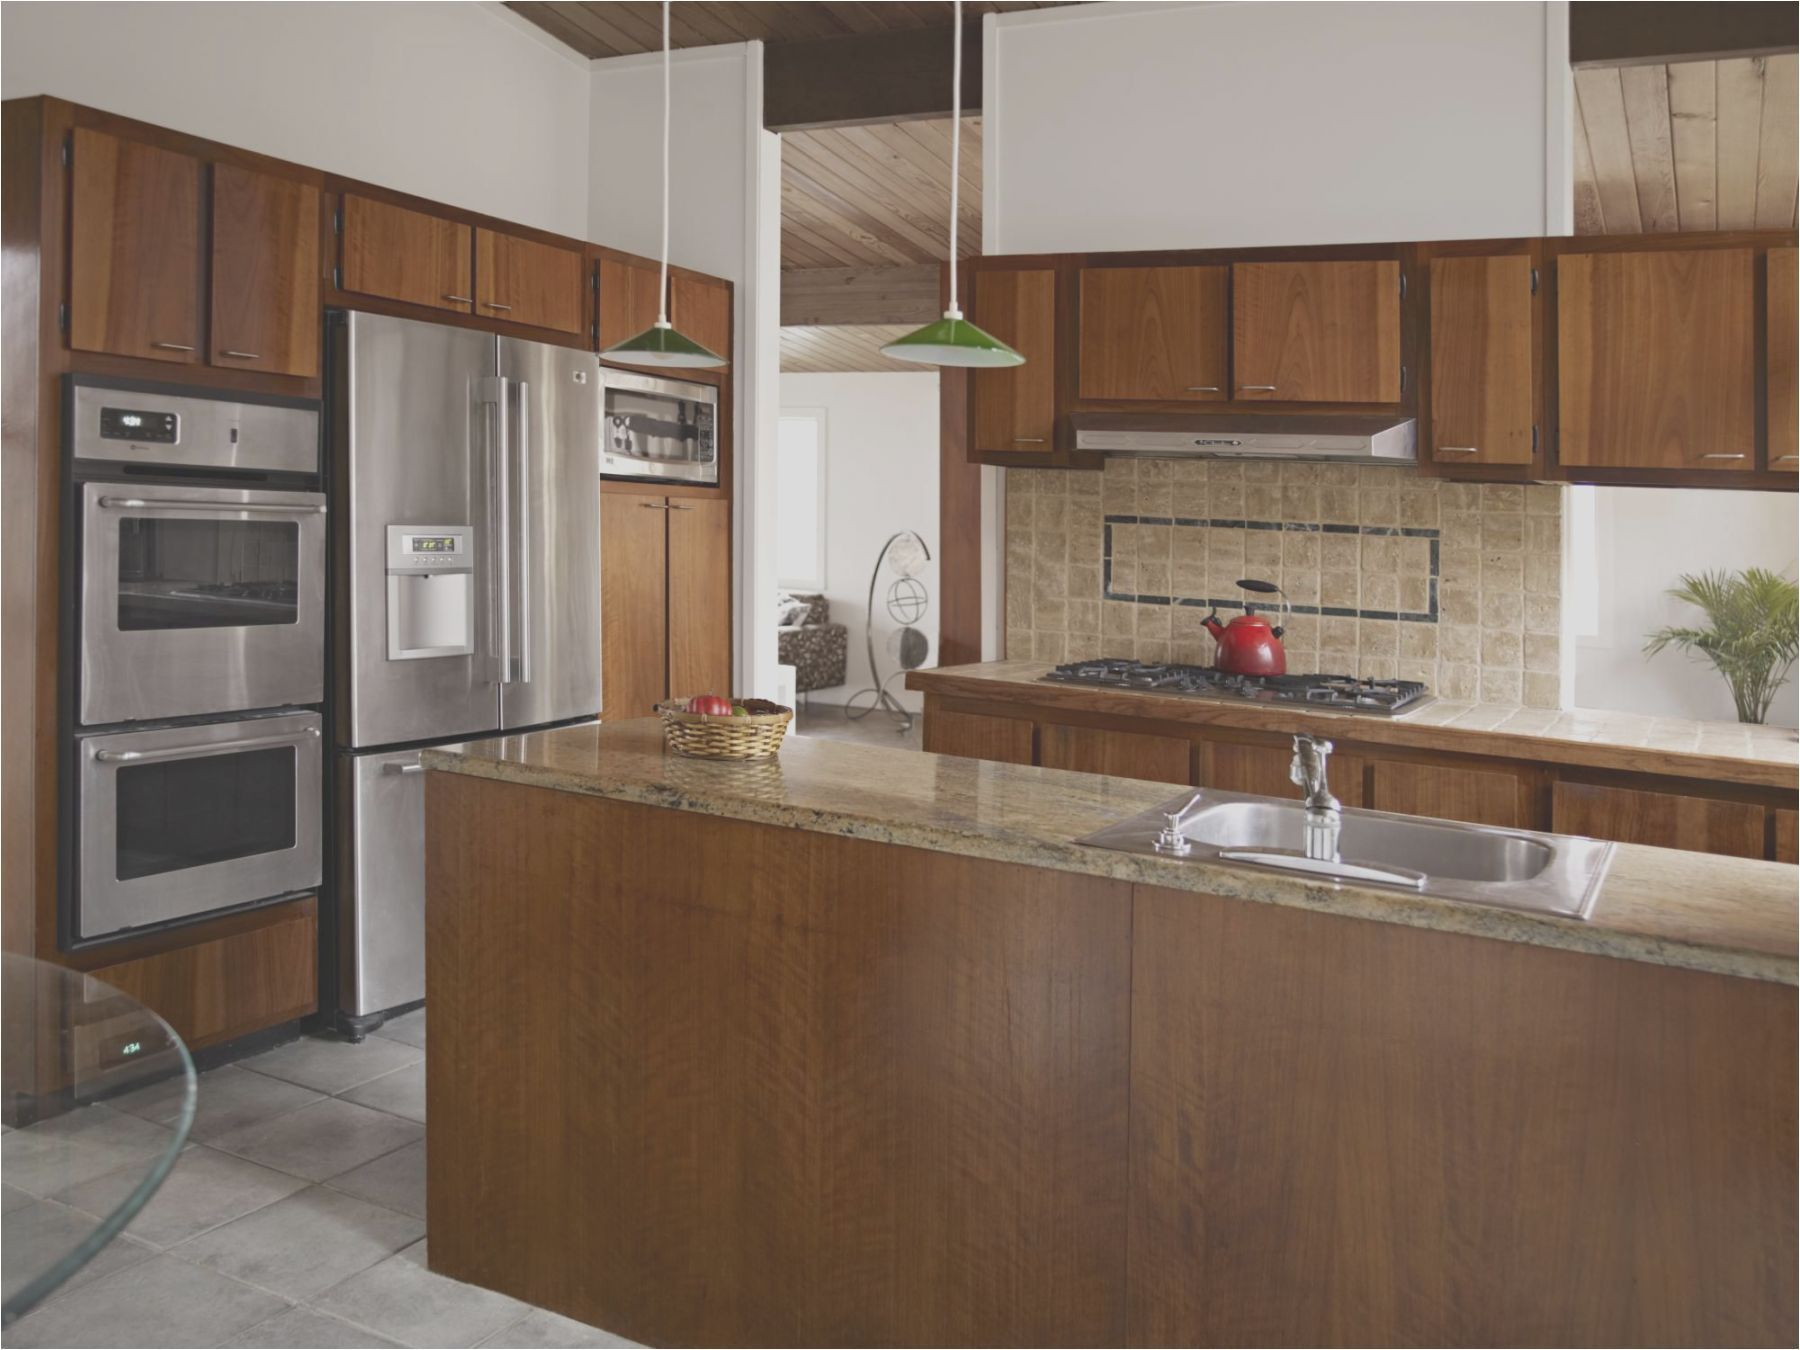 Best 21 Kitchen Cabinet Refacing Ideas 2019 Options To 400 x 300